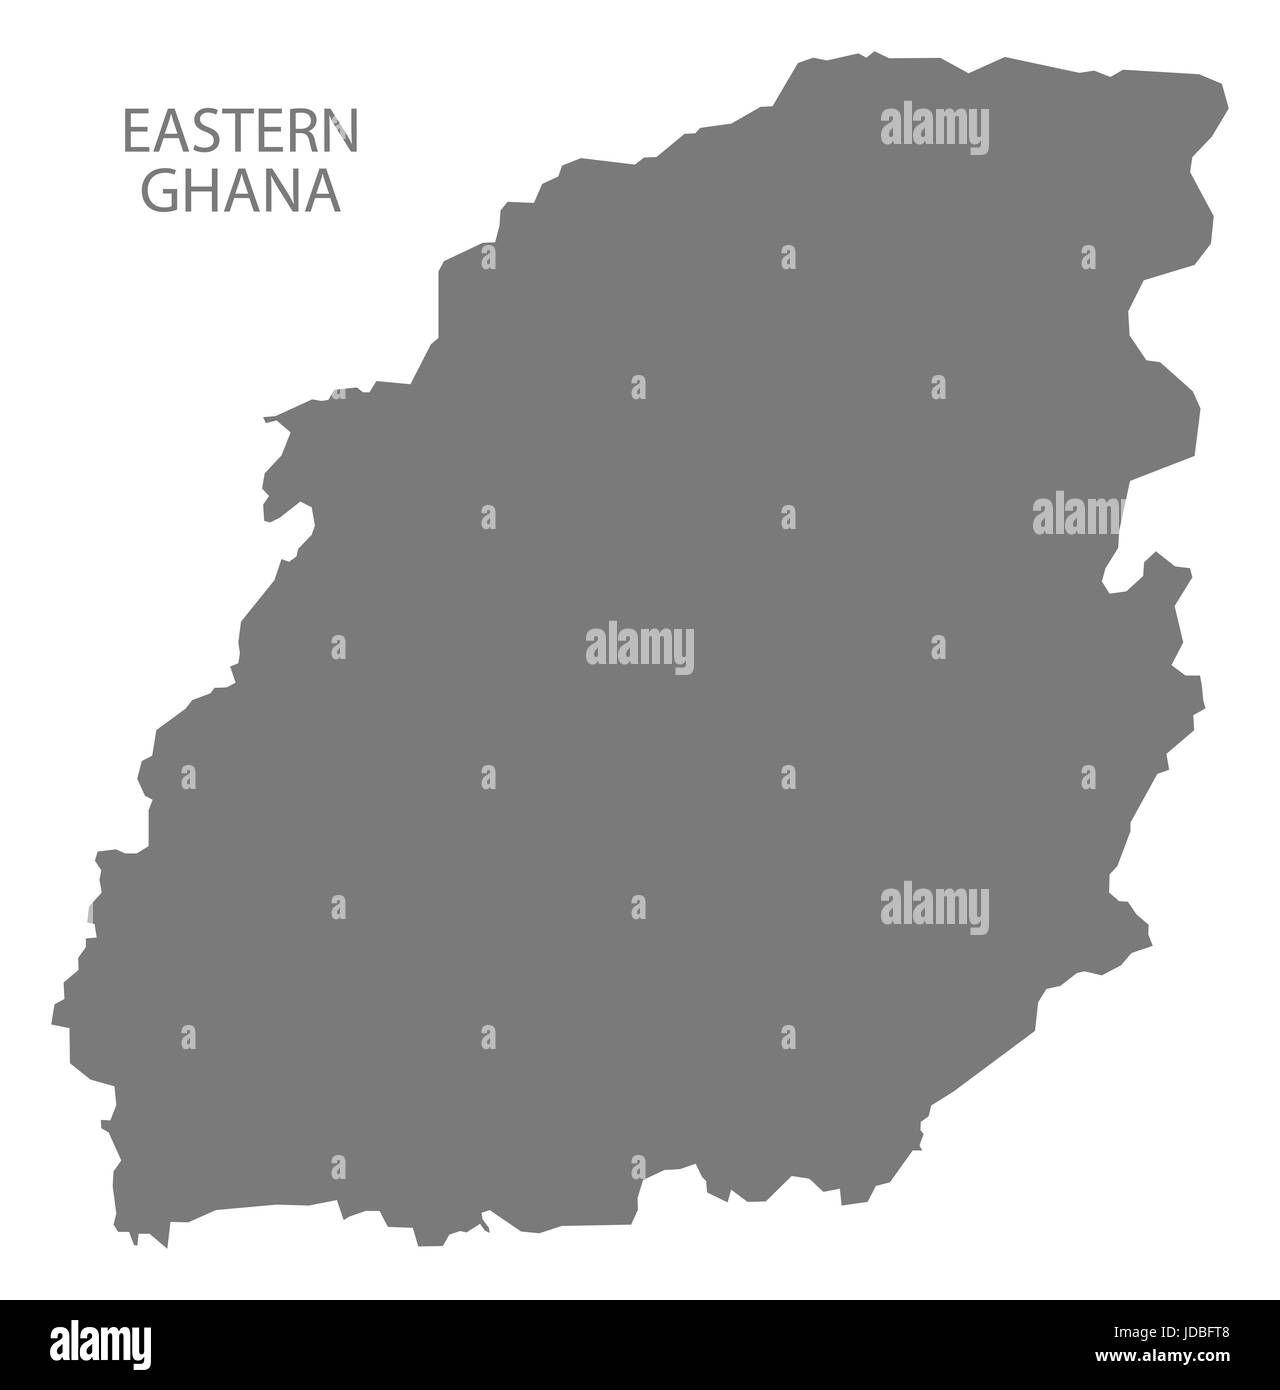 Eastern Ghana map grey illustration silhouette - Stock Image